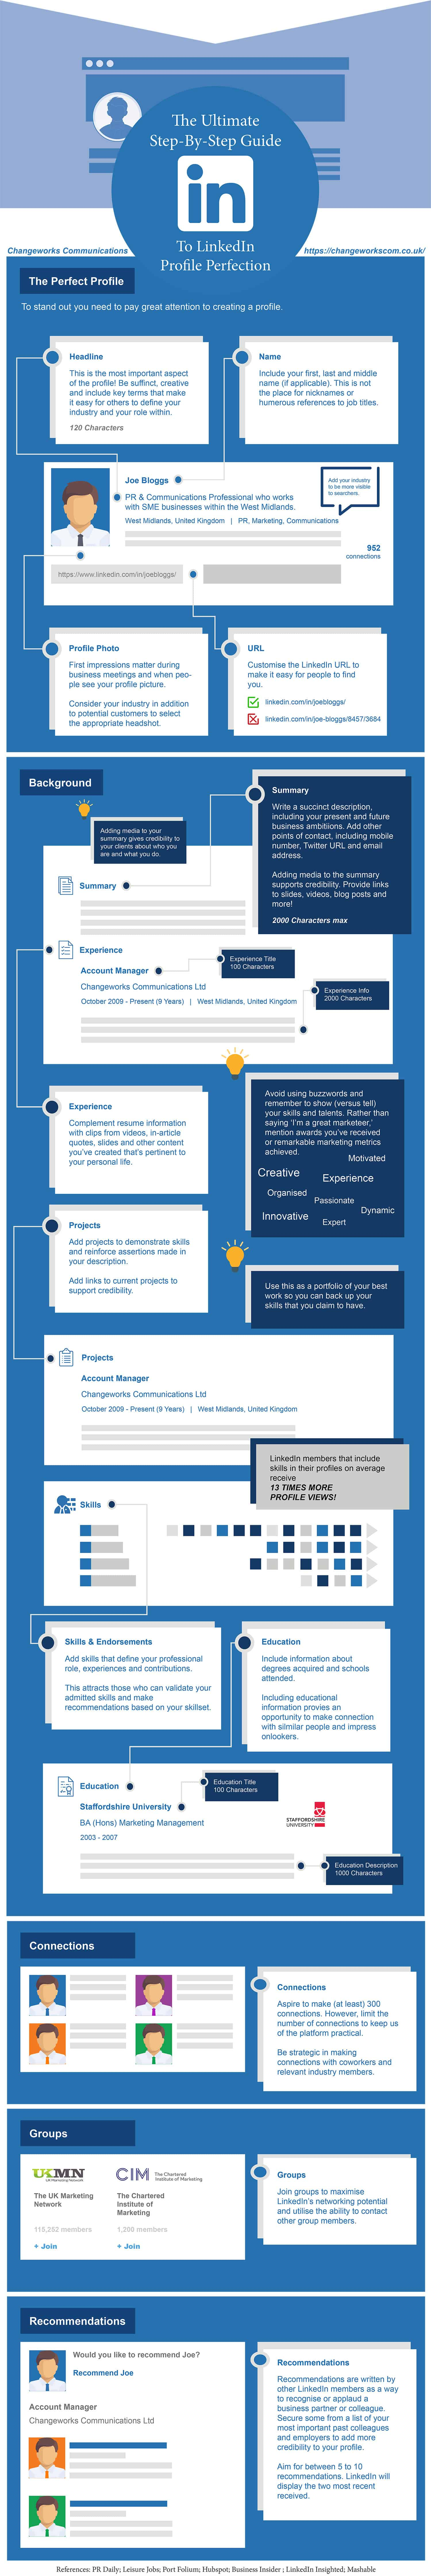 Build your linkedin profile infographic